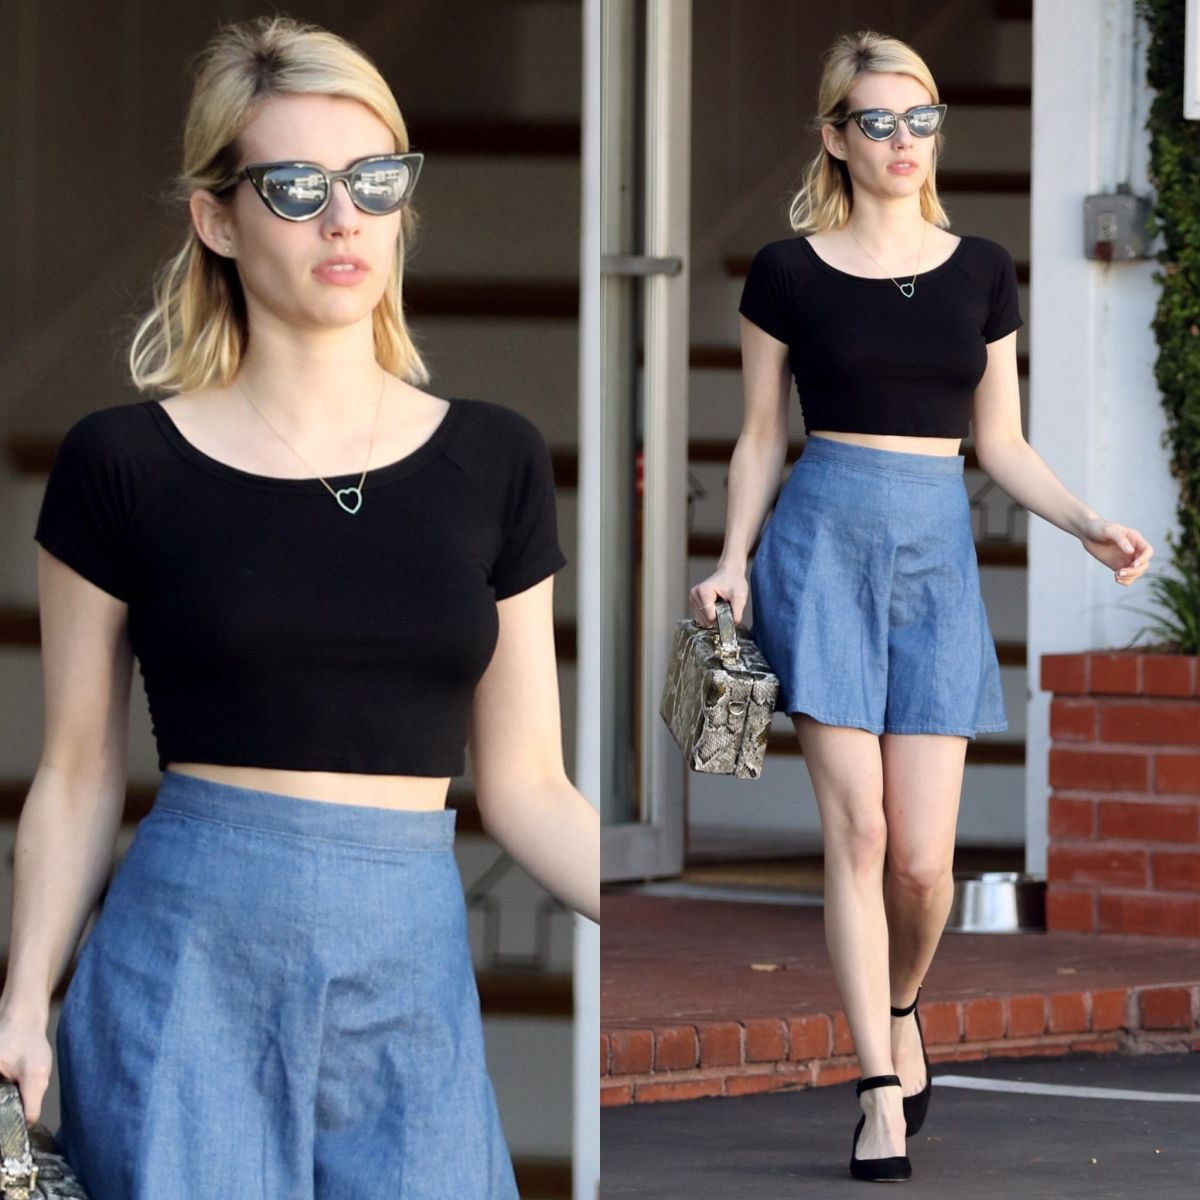 You won't believe where Emma Roberts got her outfit from! Get all the details via @swavyapp